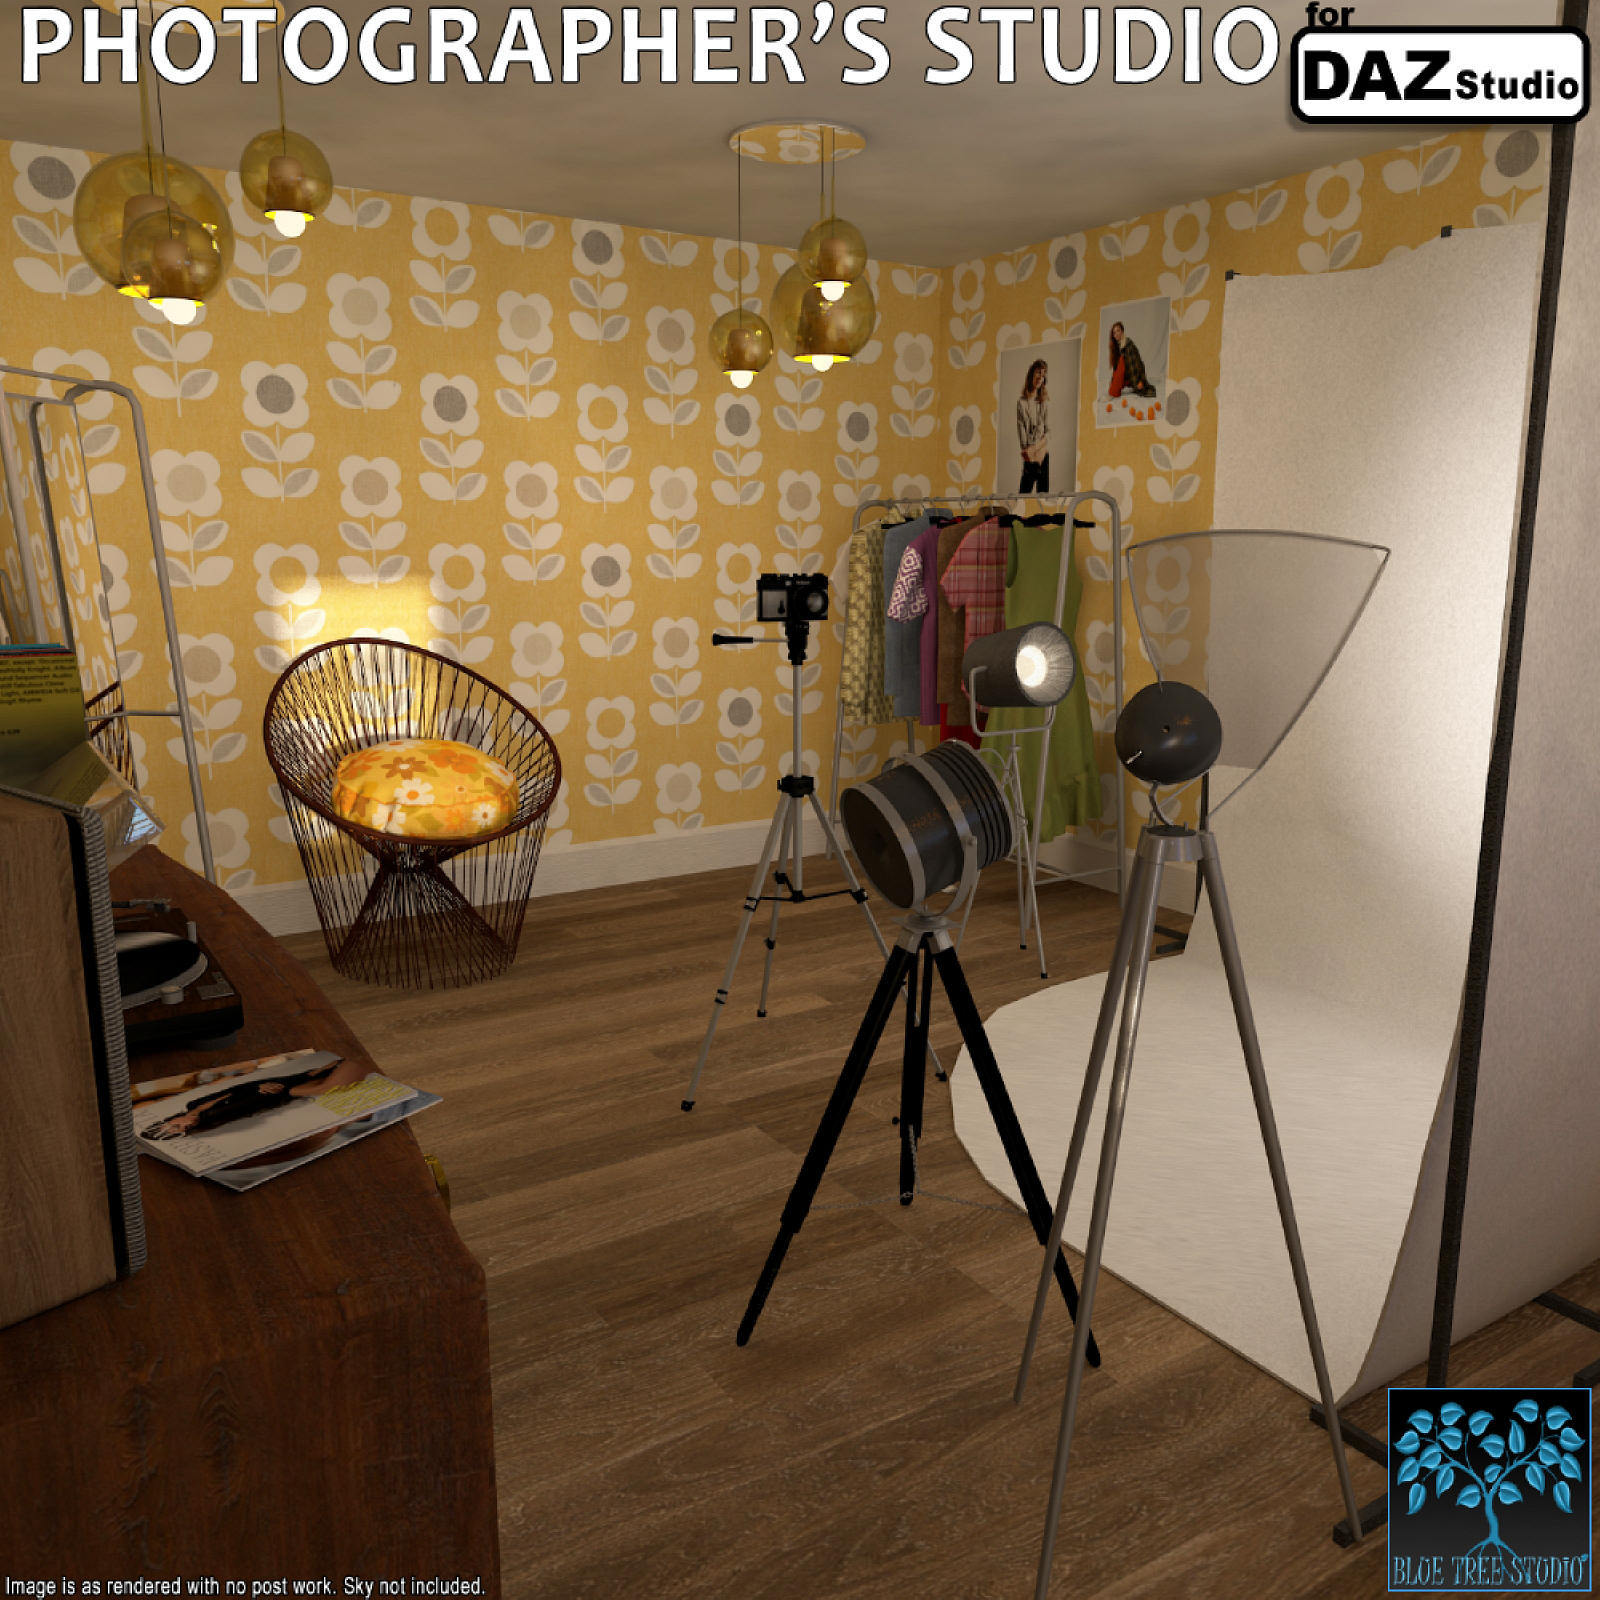 Photographer's Studio for DAZ Studio by BlueTreeStudio